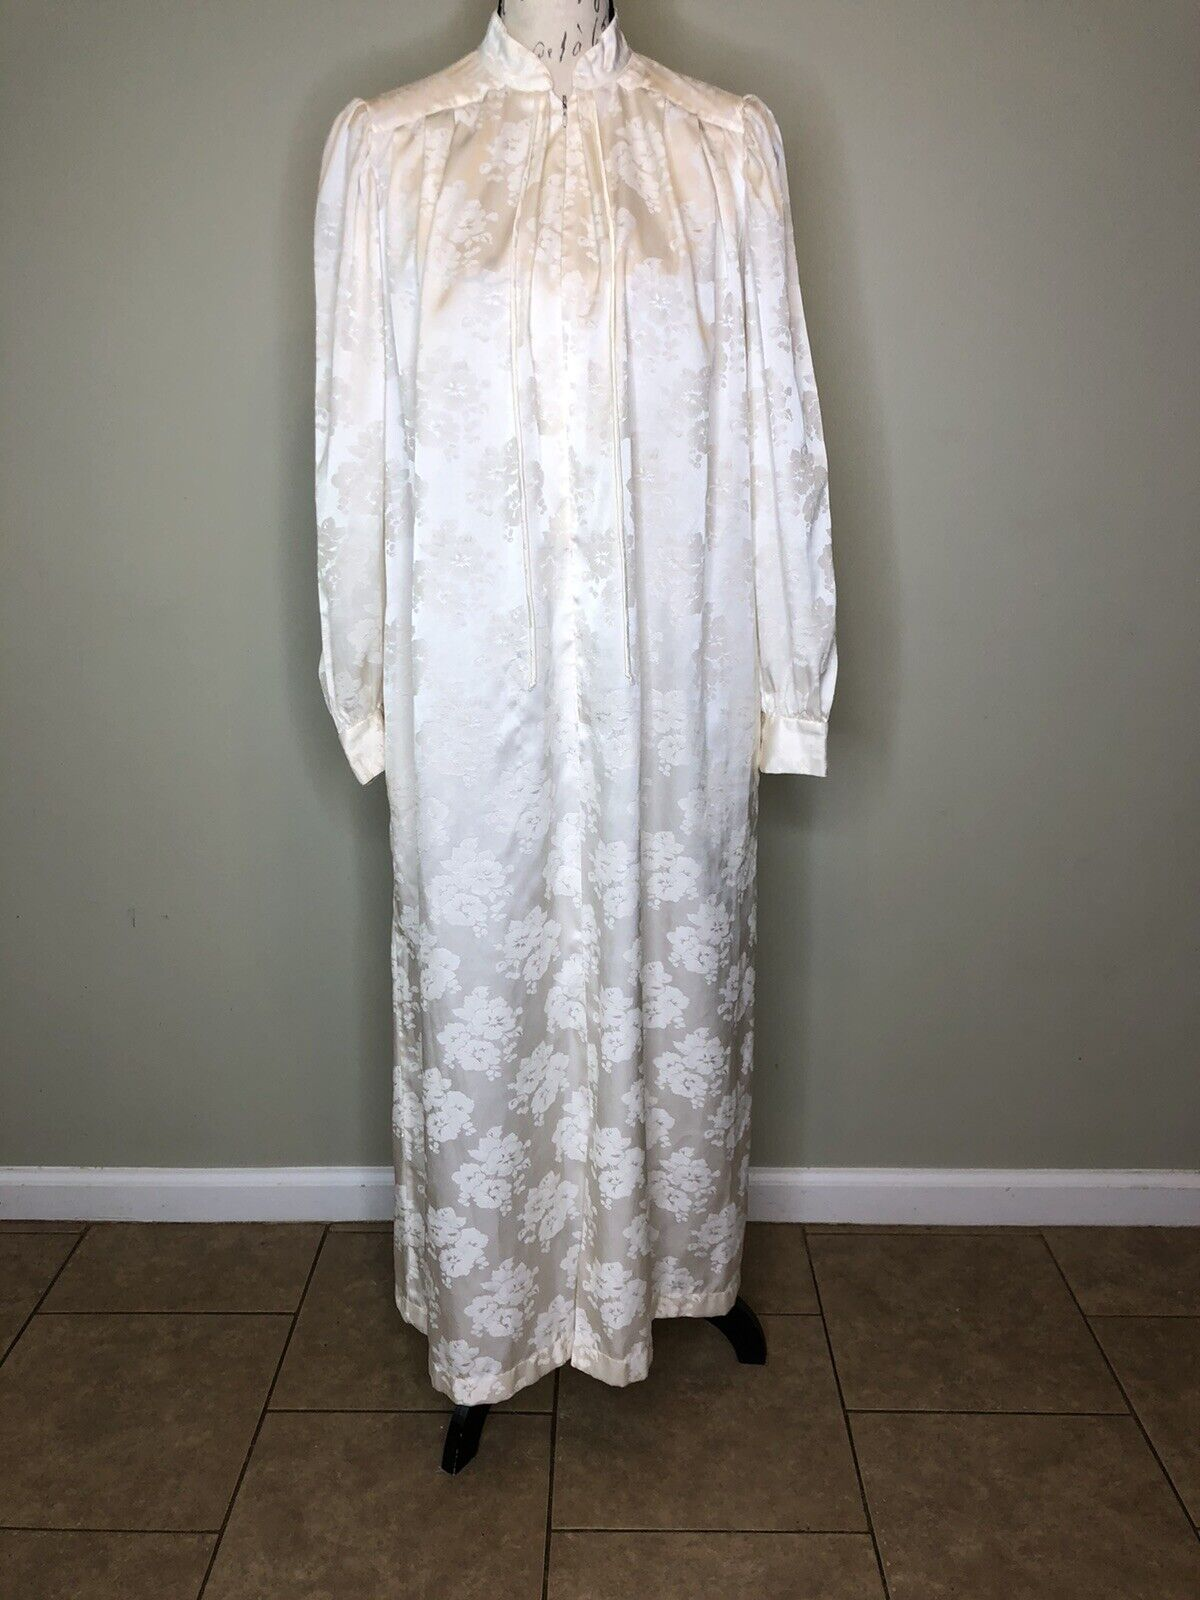 Vintage 1970s Christian Dior Loungewear White Nightgown Dress zip Union Made